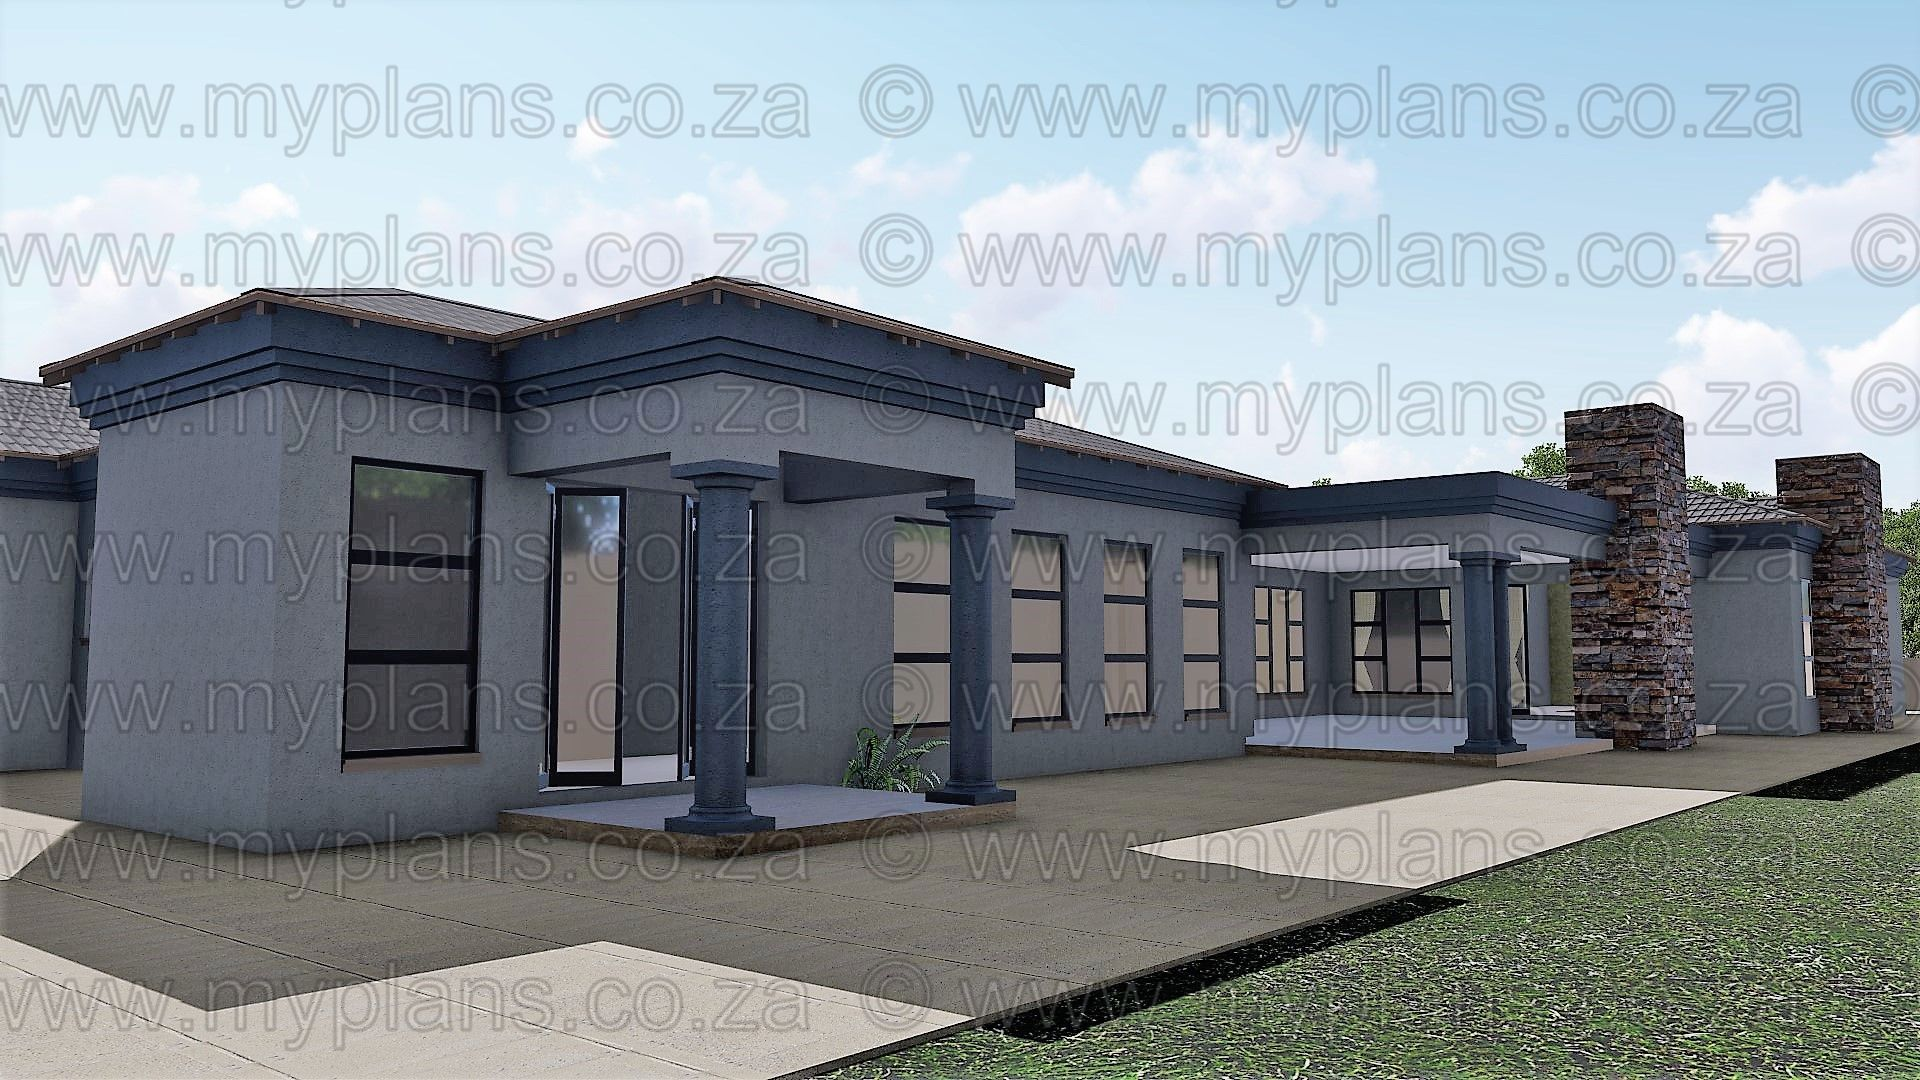 4 Bedroom House Plan Mlb 058 1s 4 Bedroom House Plans House Plans South Africa Bedroom House Plans